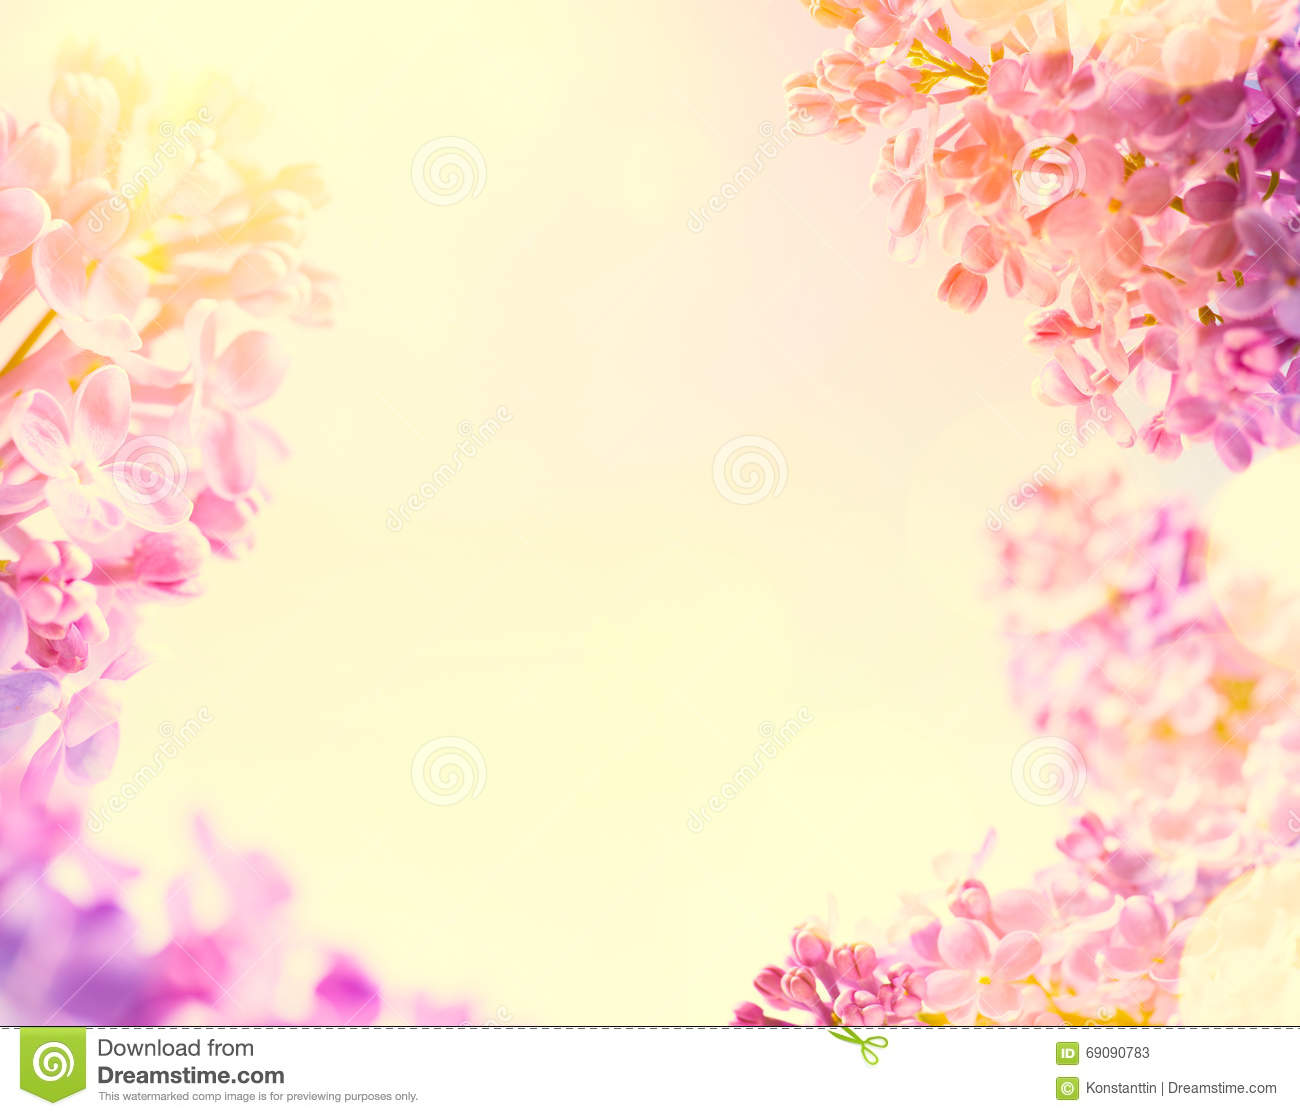 Art spring background with fresh spring flowers stock image image royalty free stock photo mightylinksfo